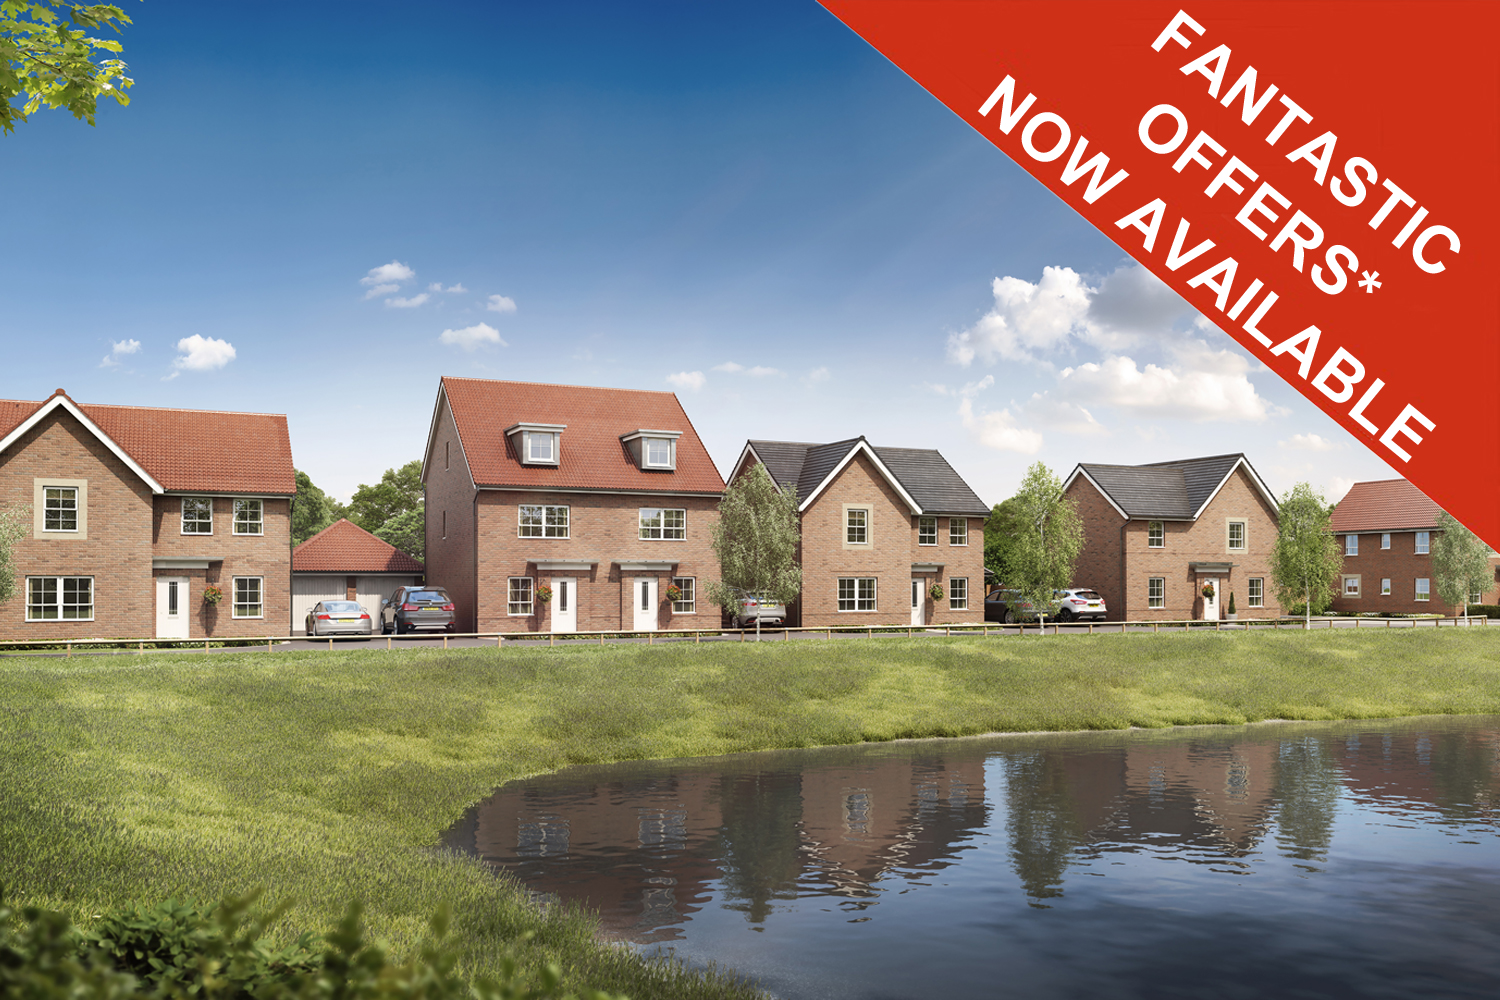 New Build Homes in Wigston